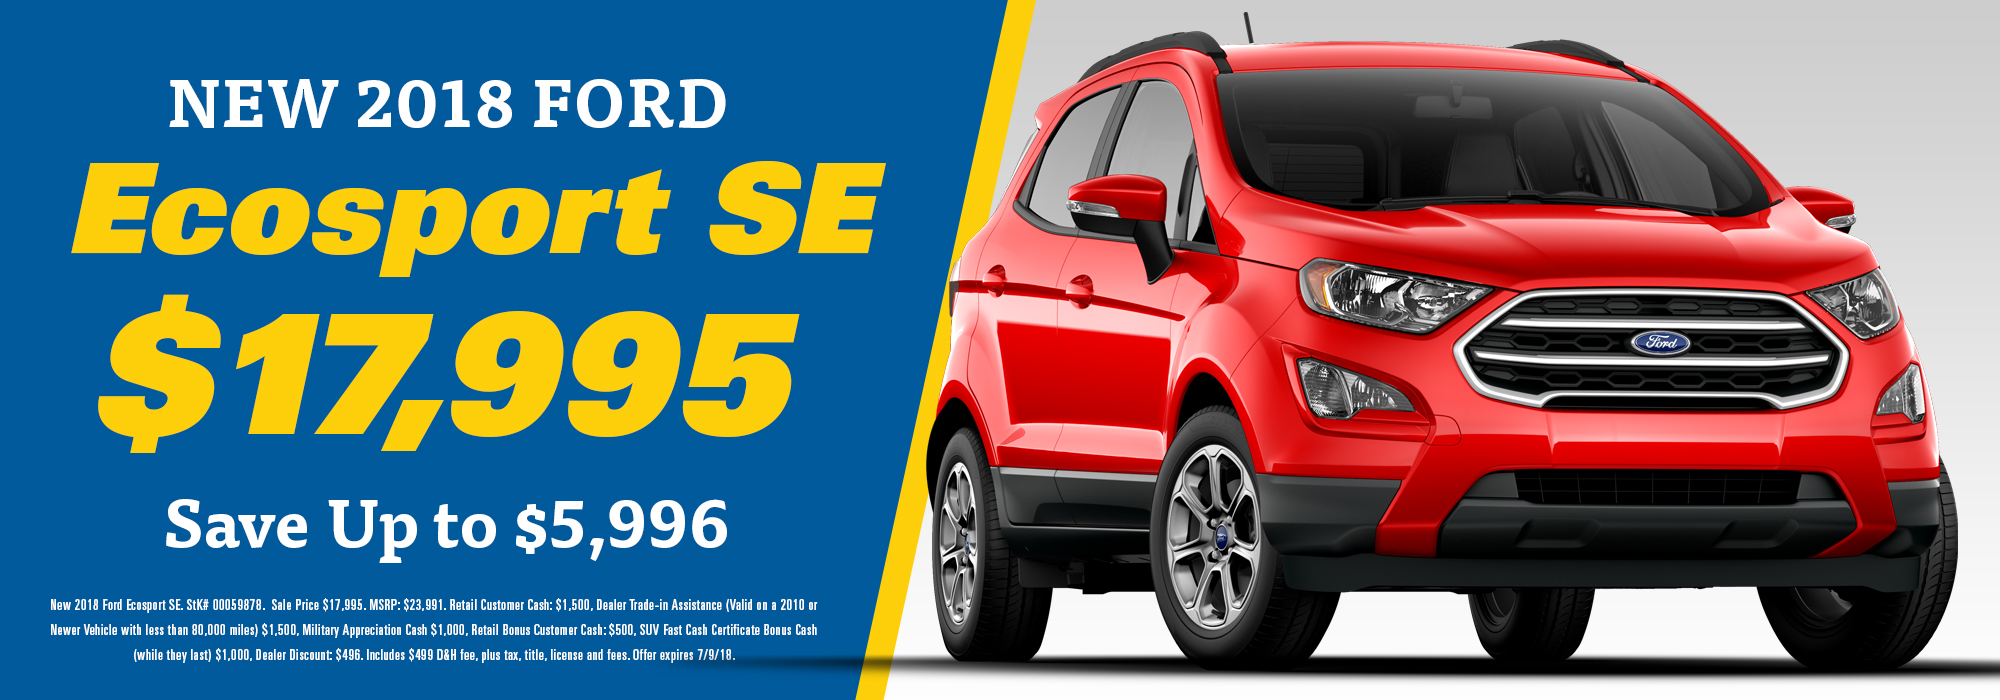 ford ecosport savings special